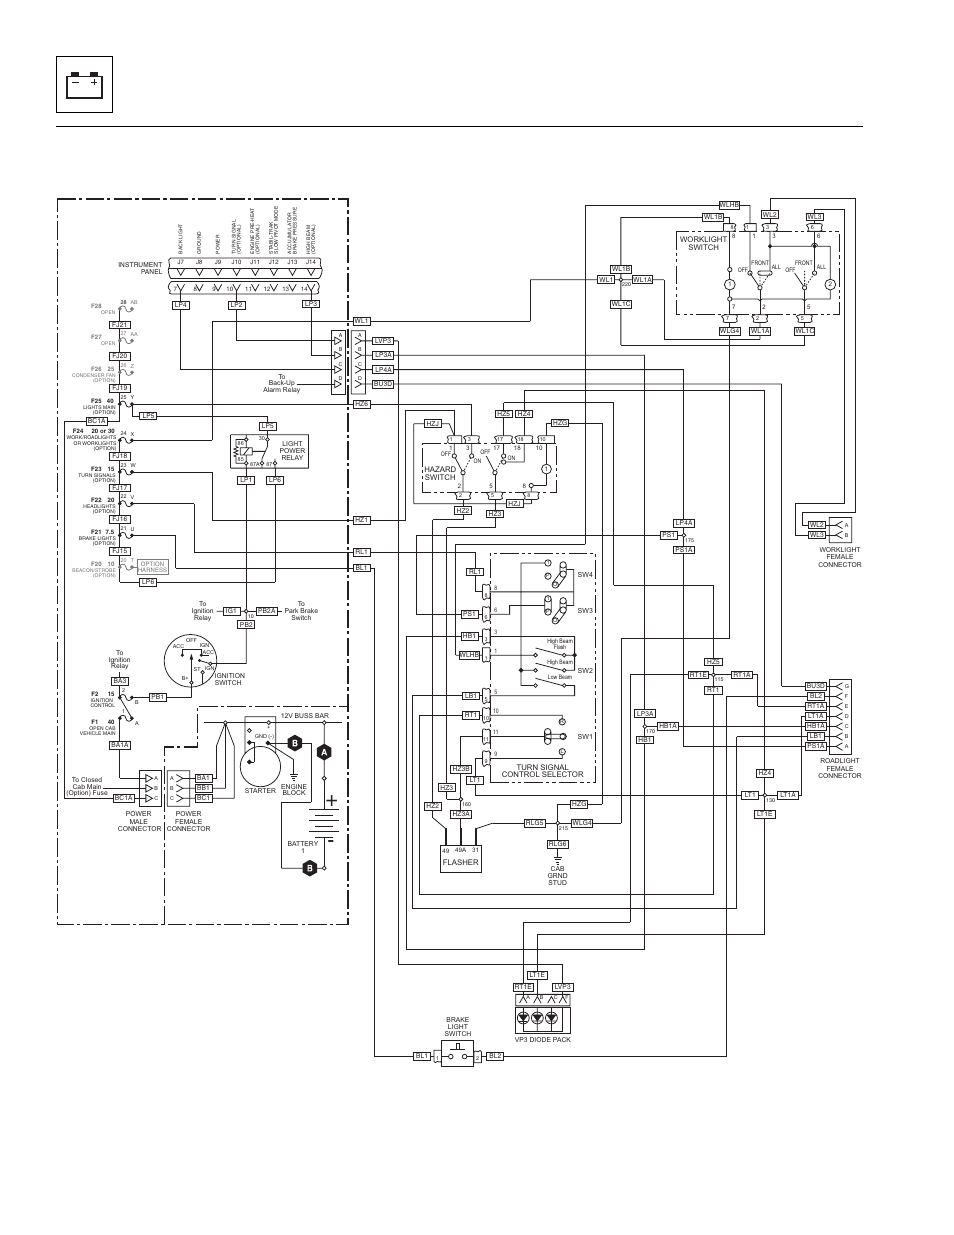 22 optional roadlight electrical schematic, Electrical